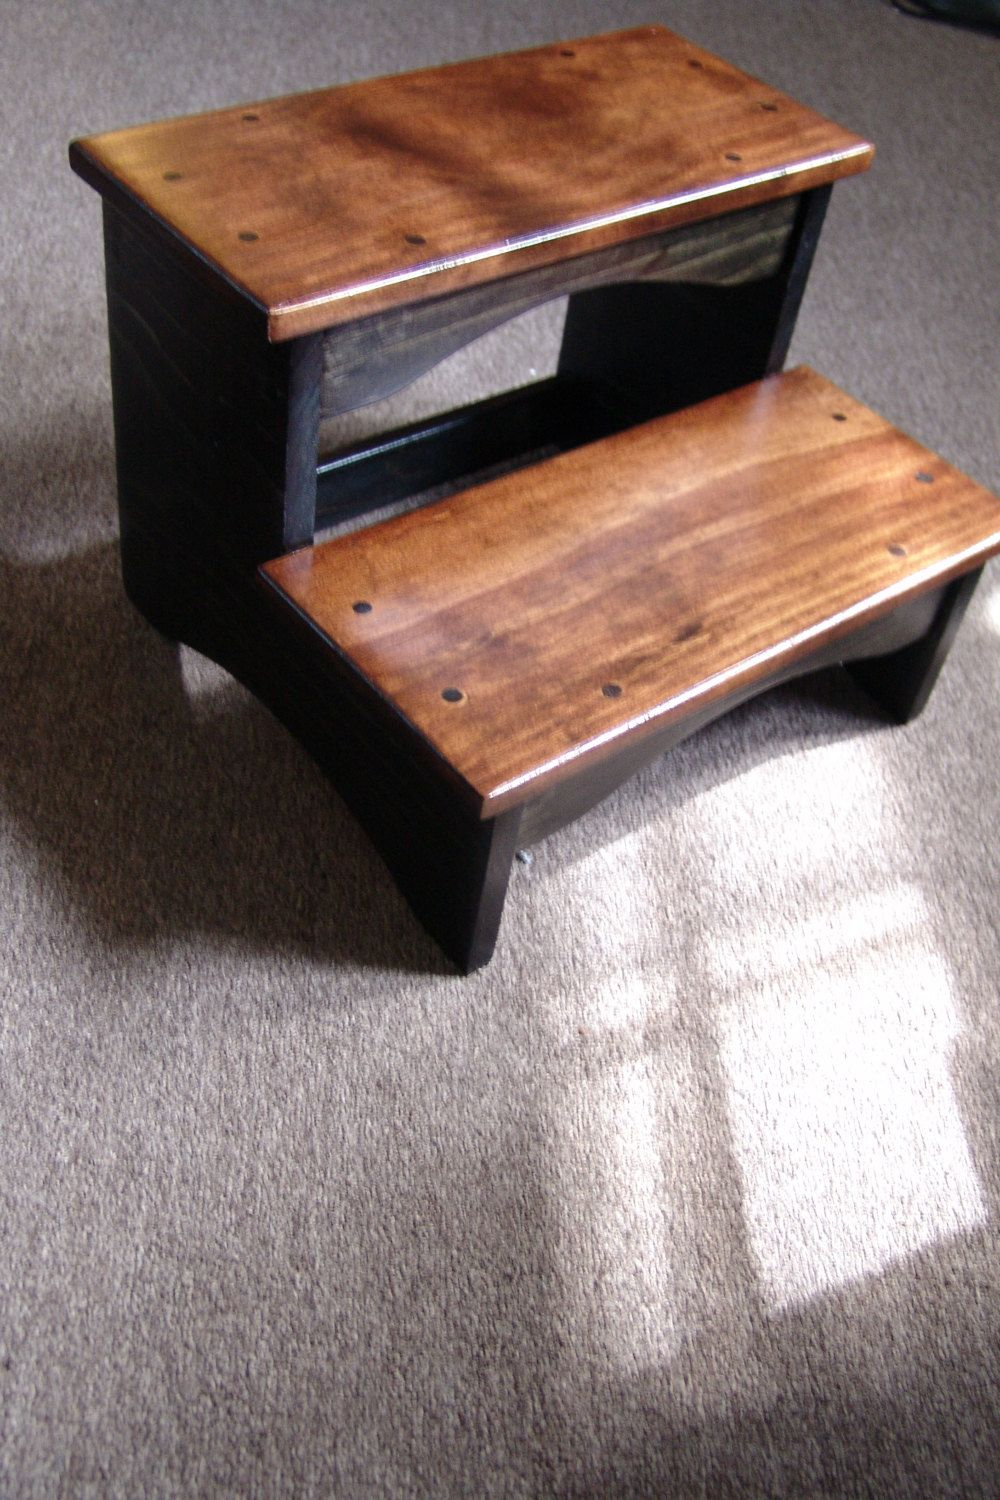 Superb Handcrafted Heavy Duty 2 Step Stool Solid Wood Wooden Creativecarmelina Interior Chair Design Creativecarmelinacom